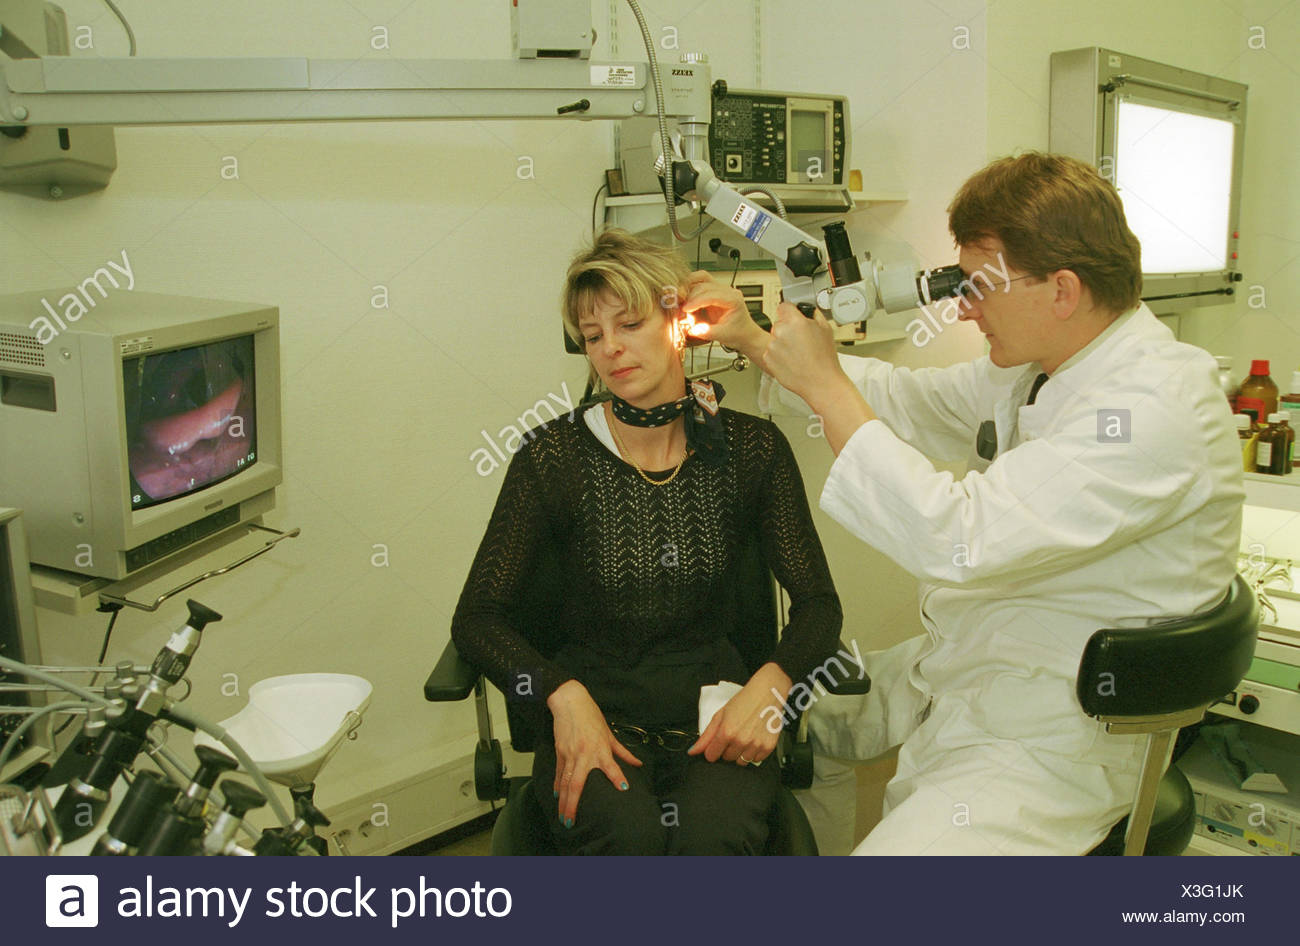 ENT doctor examines patient, Berlin - Stock Image